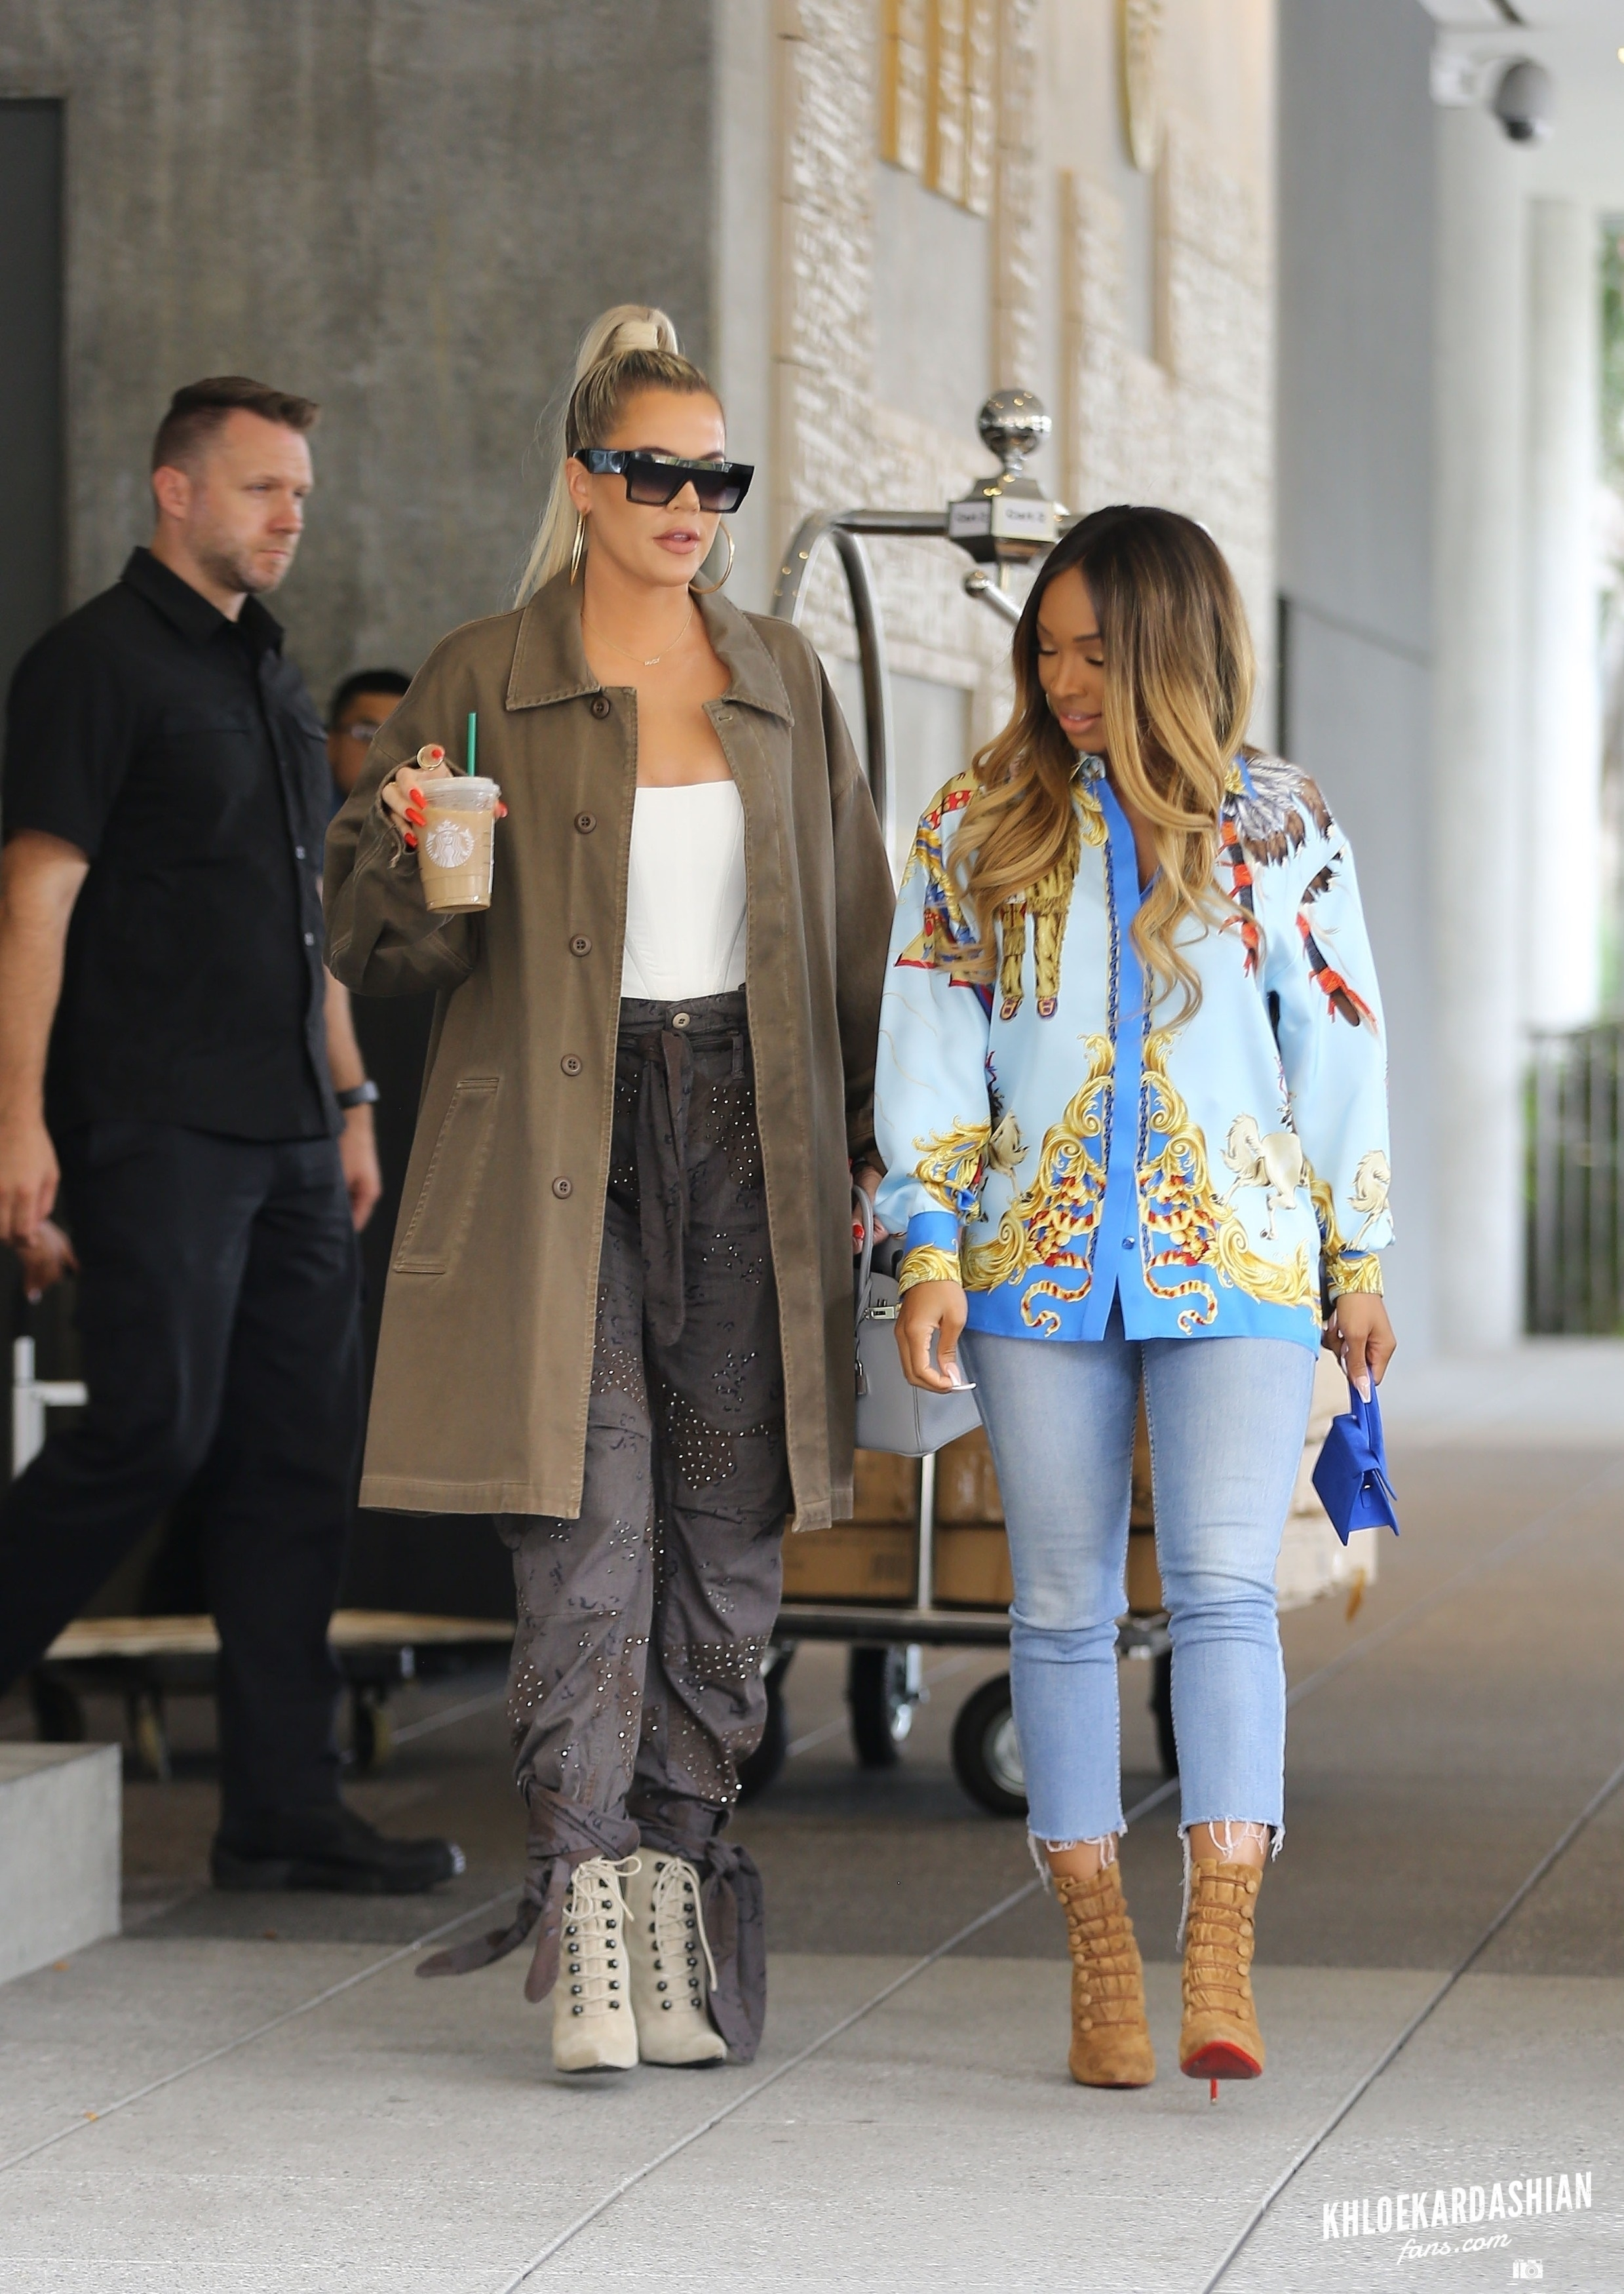 26 September: Khloé Kardashian & Malika Haqq at the Beverly Hilton Hotel